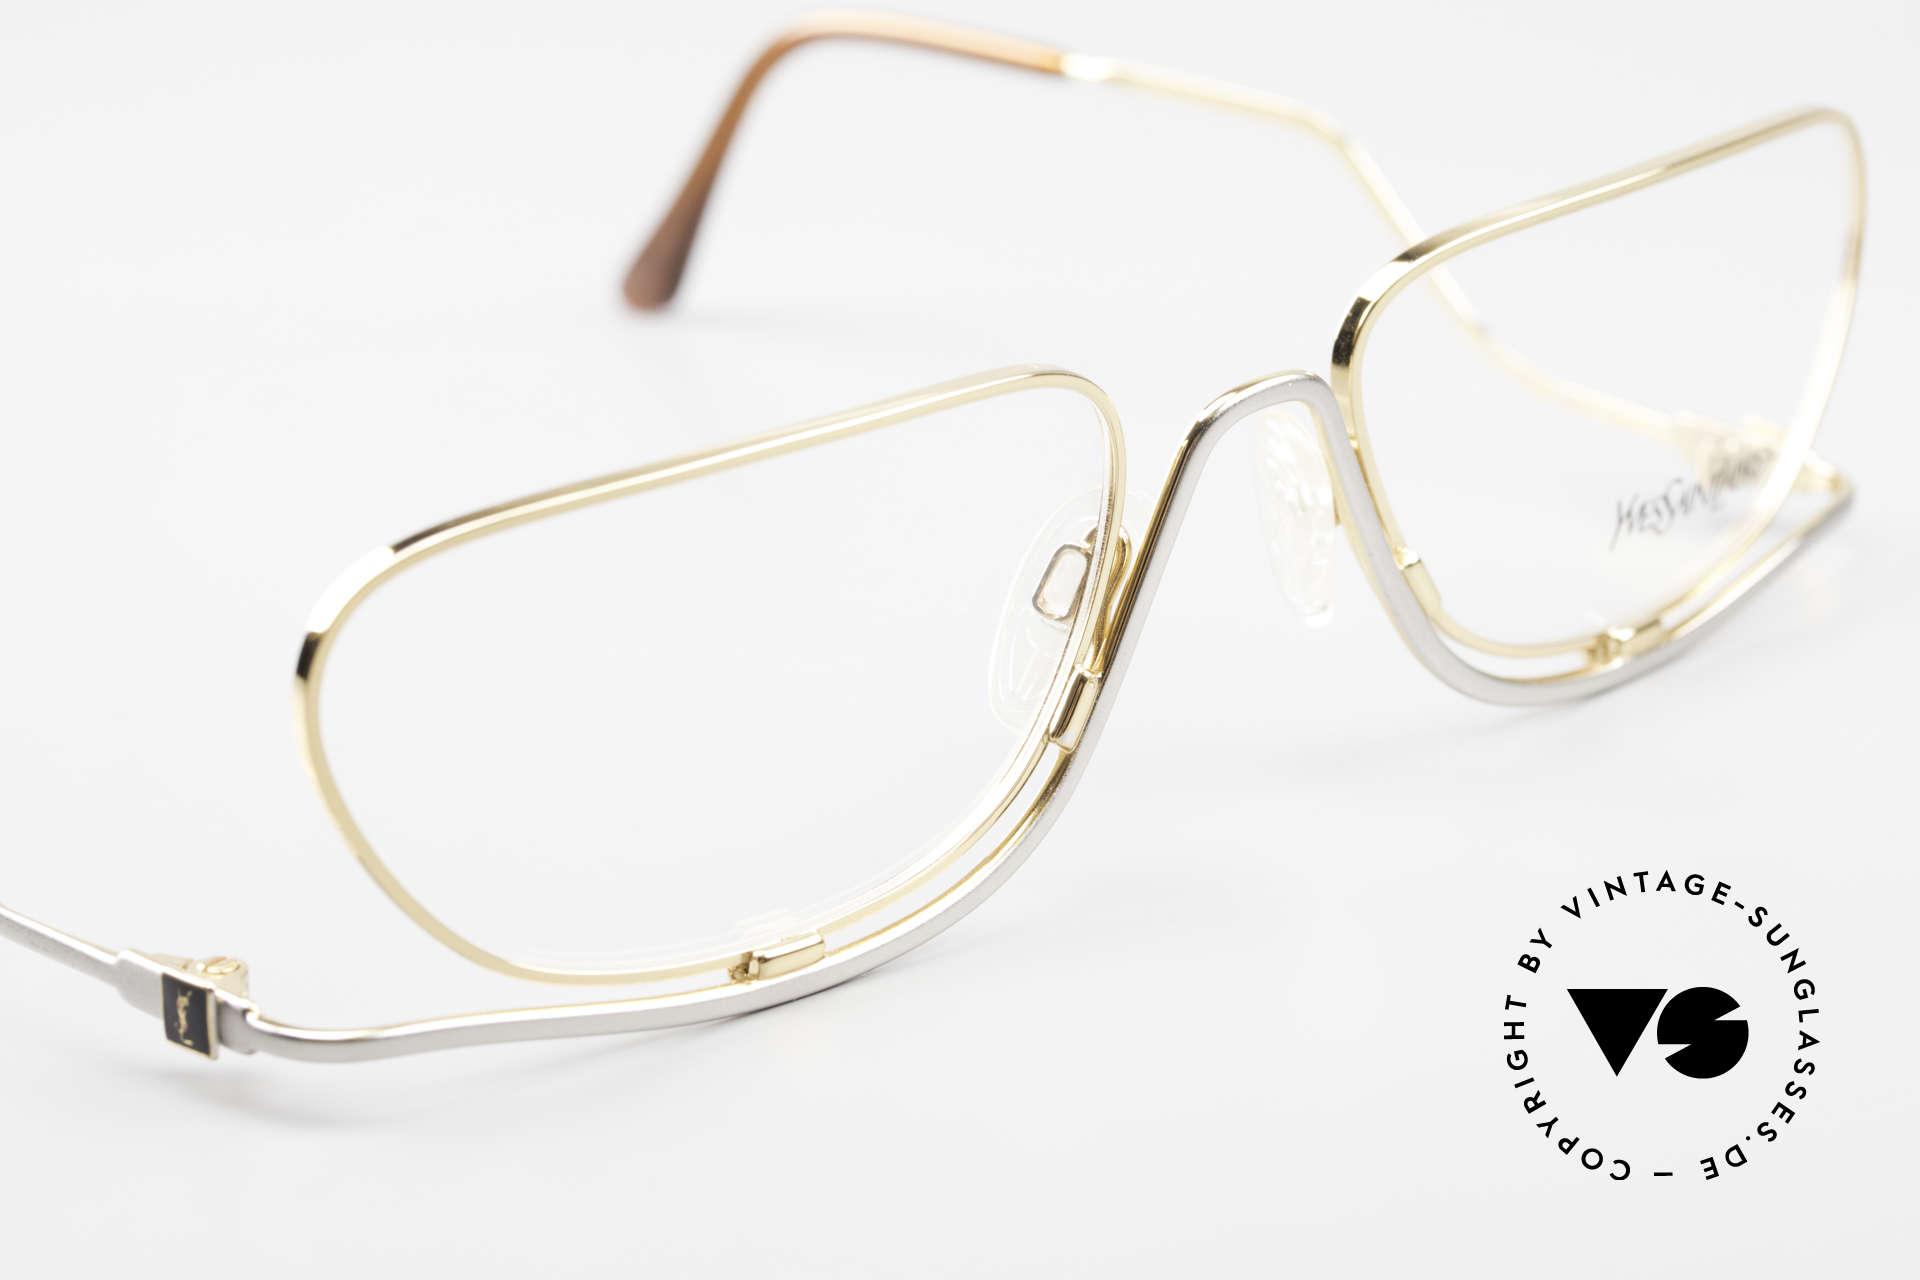 Yves Saint Laurent 4012 Y116 Extraordinary Eyeglasses, NO retro glasses, but an authentic 80's original, Made for Women